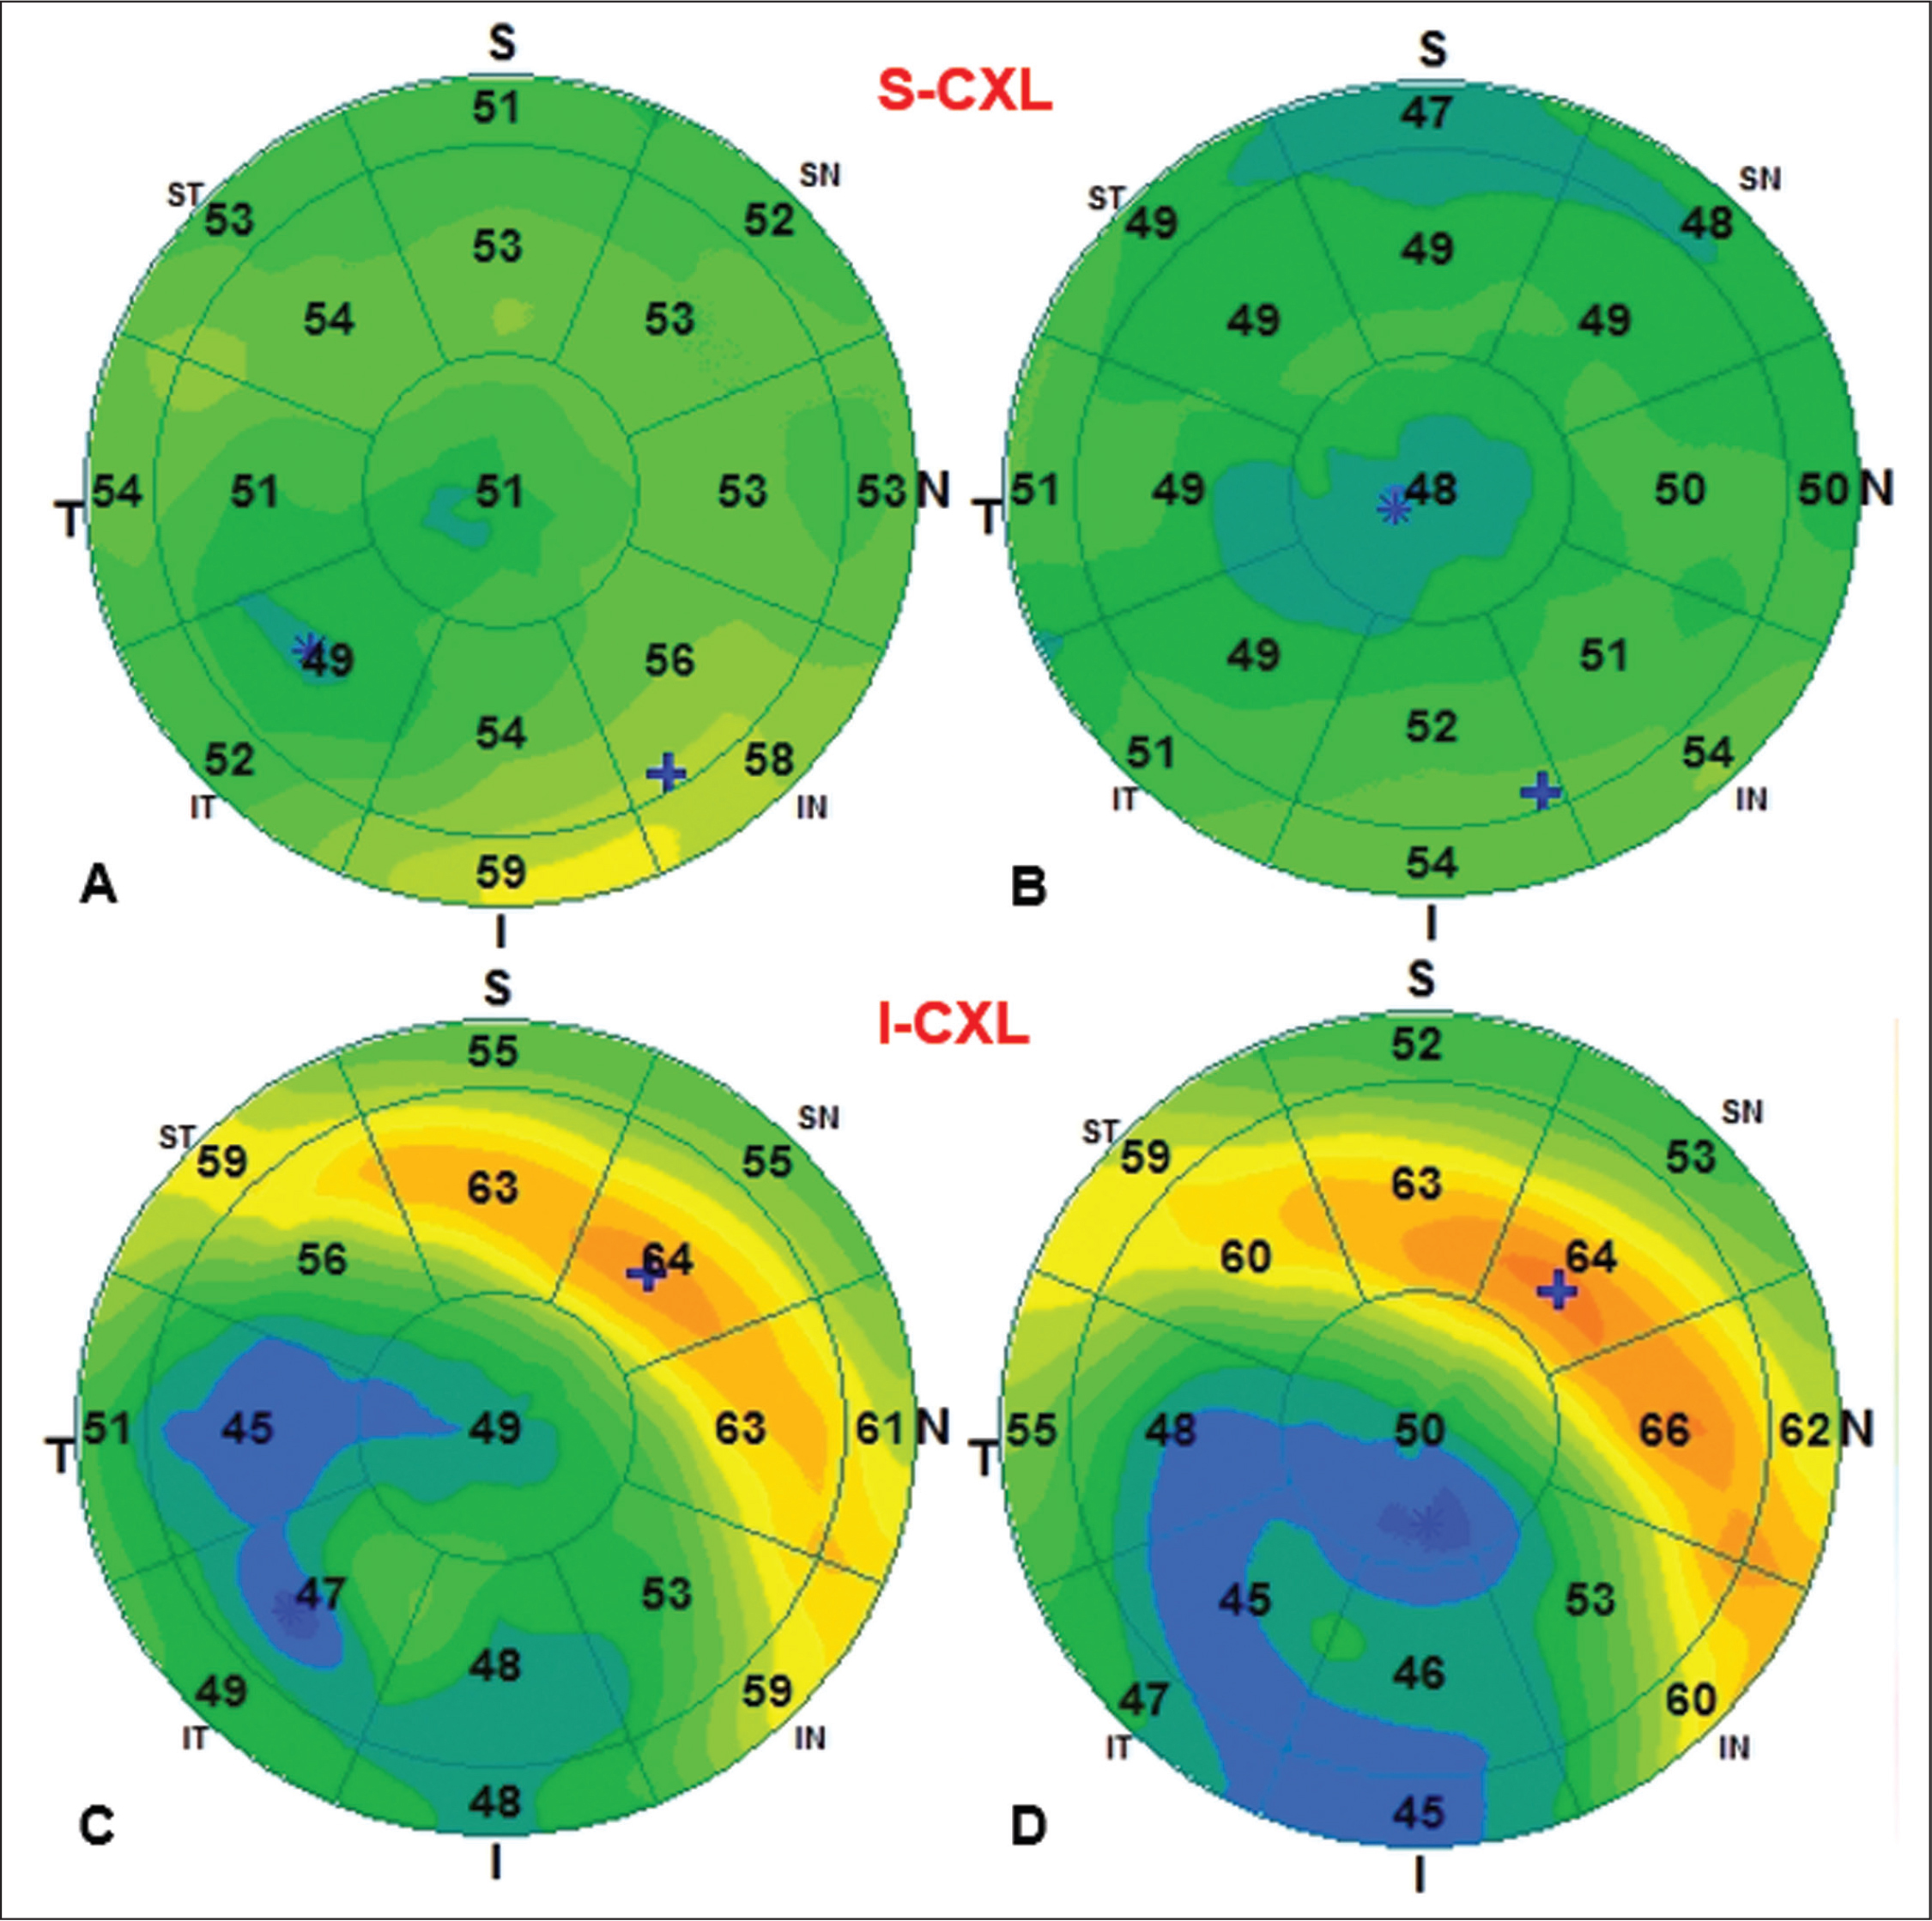 Representative result of epithelial thickness mapping by spectral-domain optical coherence tomography (SD-OCT) for one eye before surgery and 6 months after (A–B) standard corneal cross-linking (S-CXL) or (C–D) iontophoresis-assisted CXL (I-CXL).